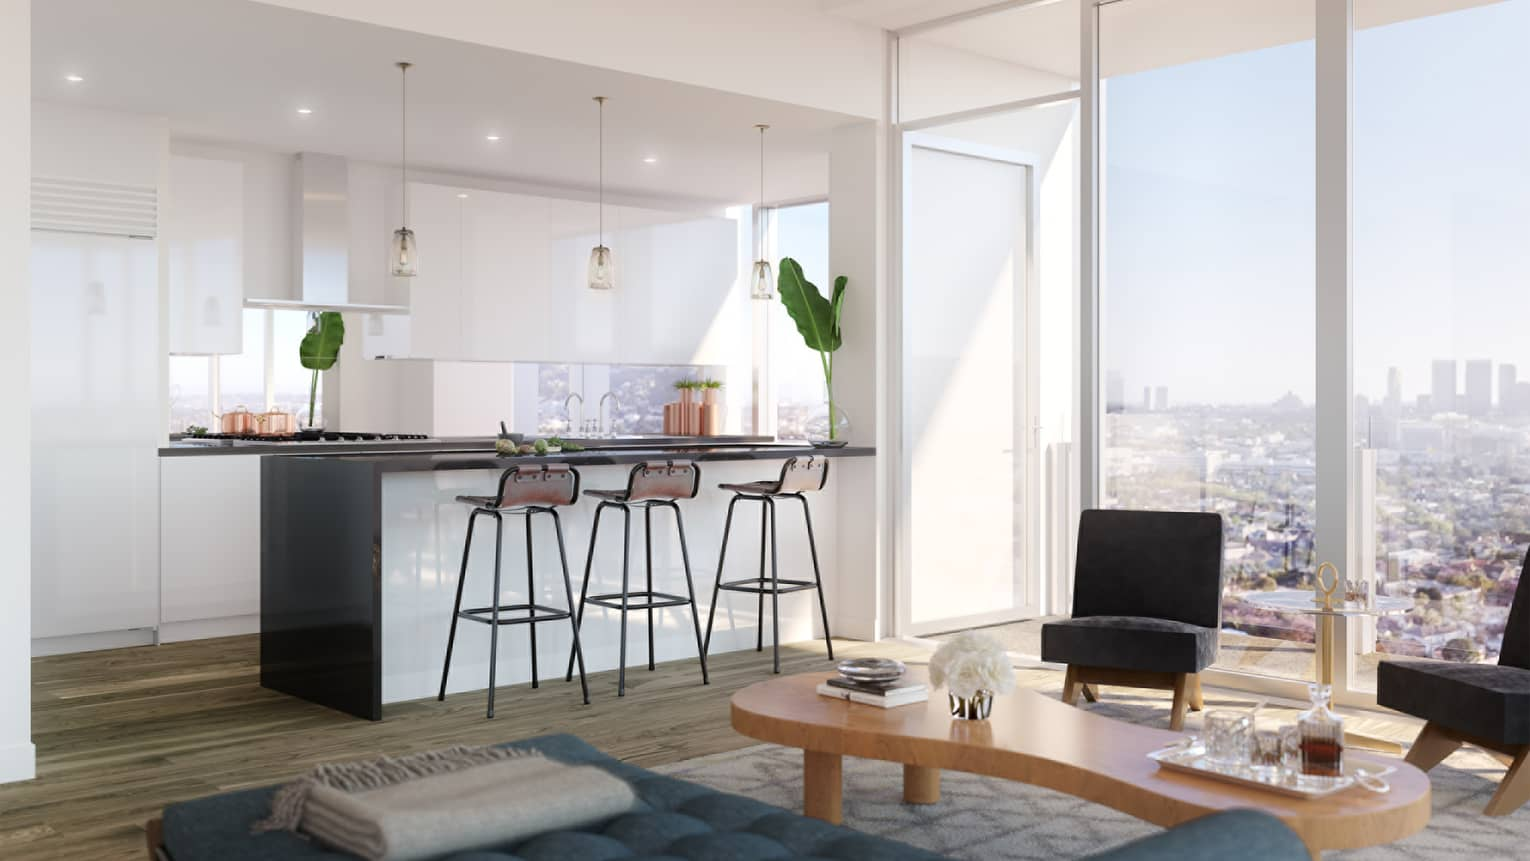 Illustration of full white kitchen, island counter, chiase lounge and black chairs by window